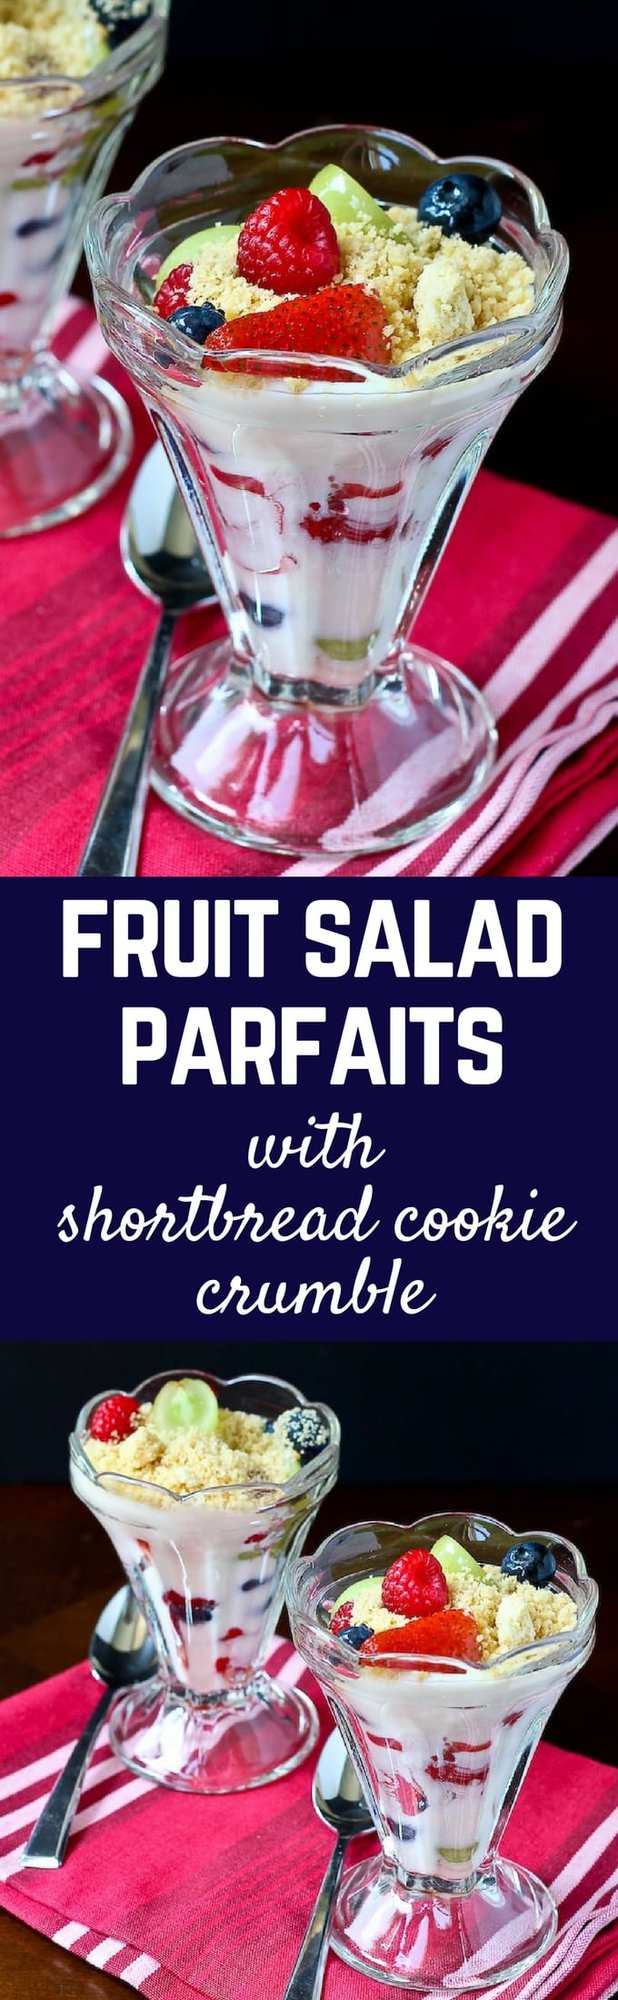 Fruit Salad Parfaits with a Sweet Shortbread Cookie Crumble - Perfect for breakfast or dessert! Great for leftover fruit salad too! Recipe on RachelCooks.com!